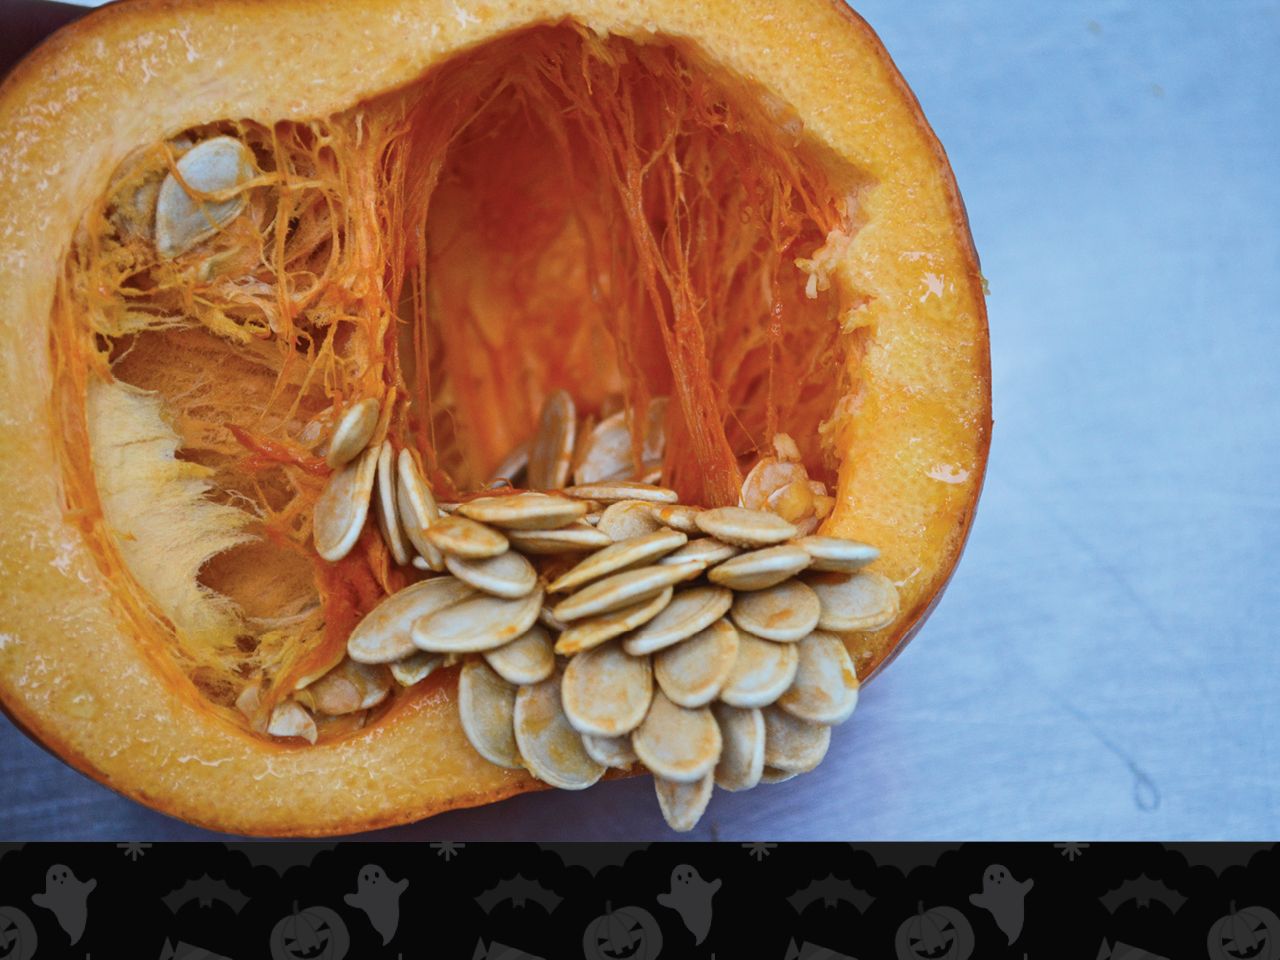 pumpkin cut open showing seeds and guts